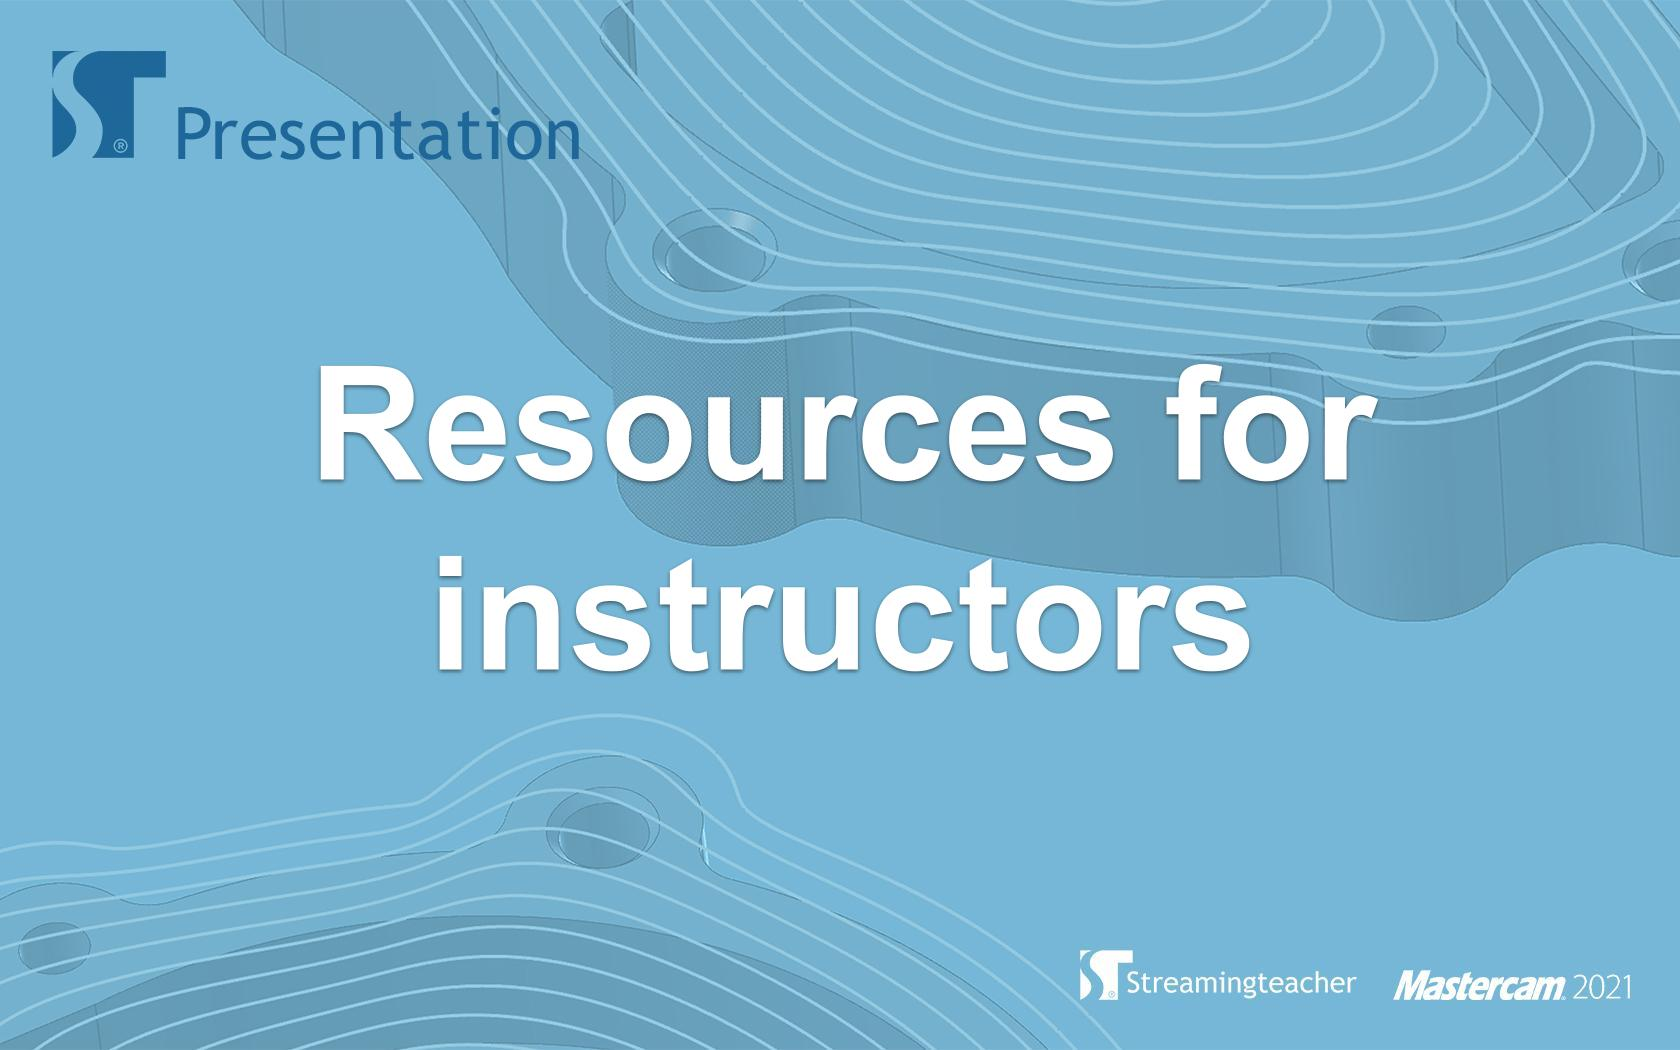 Resources for Instructors